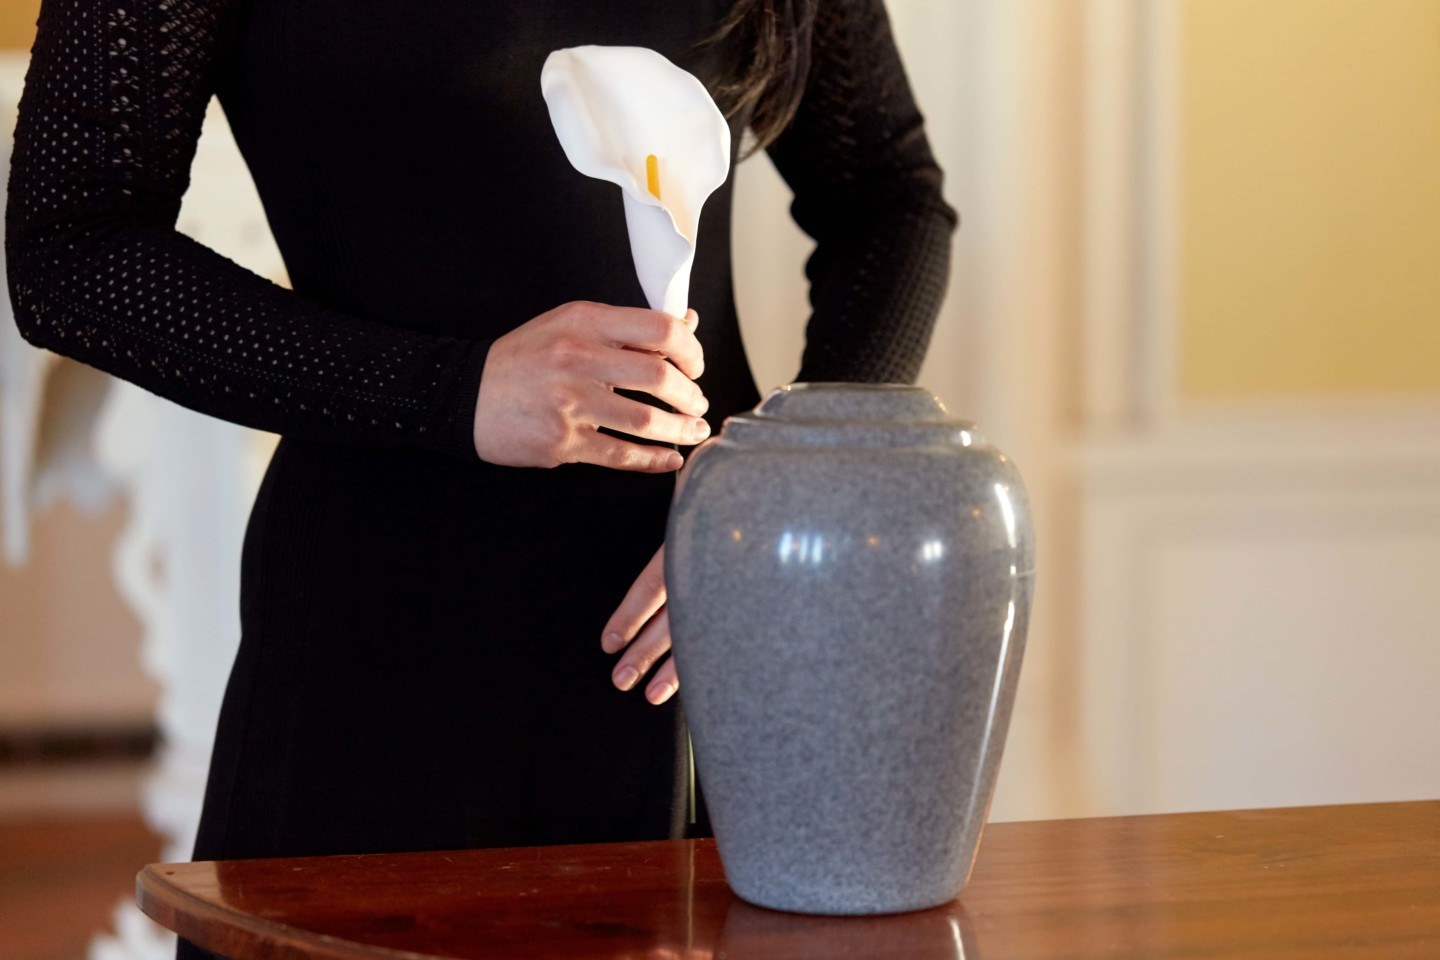 Affordable cremation cost by Simply Cremations. A woman holds a lily next to an urn.